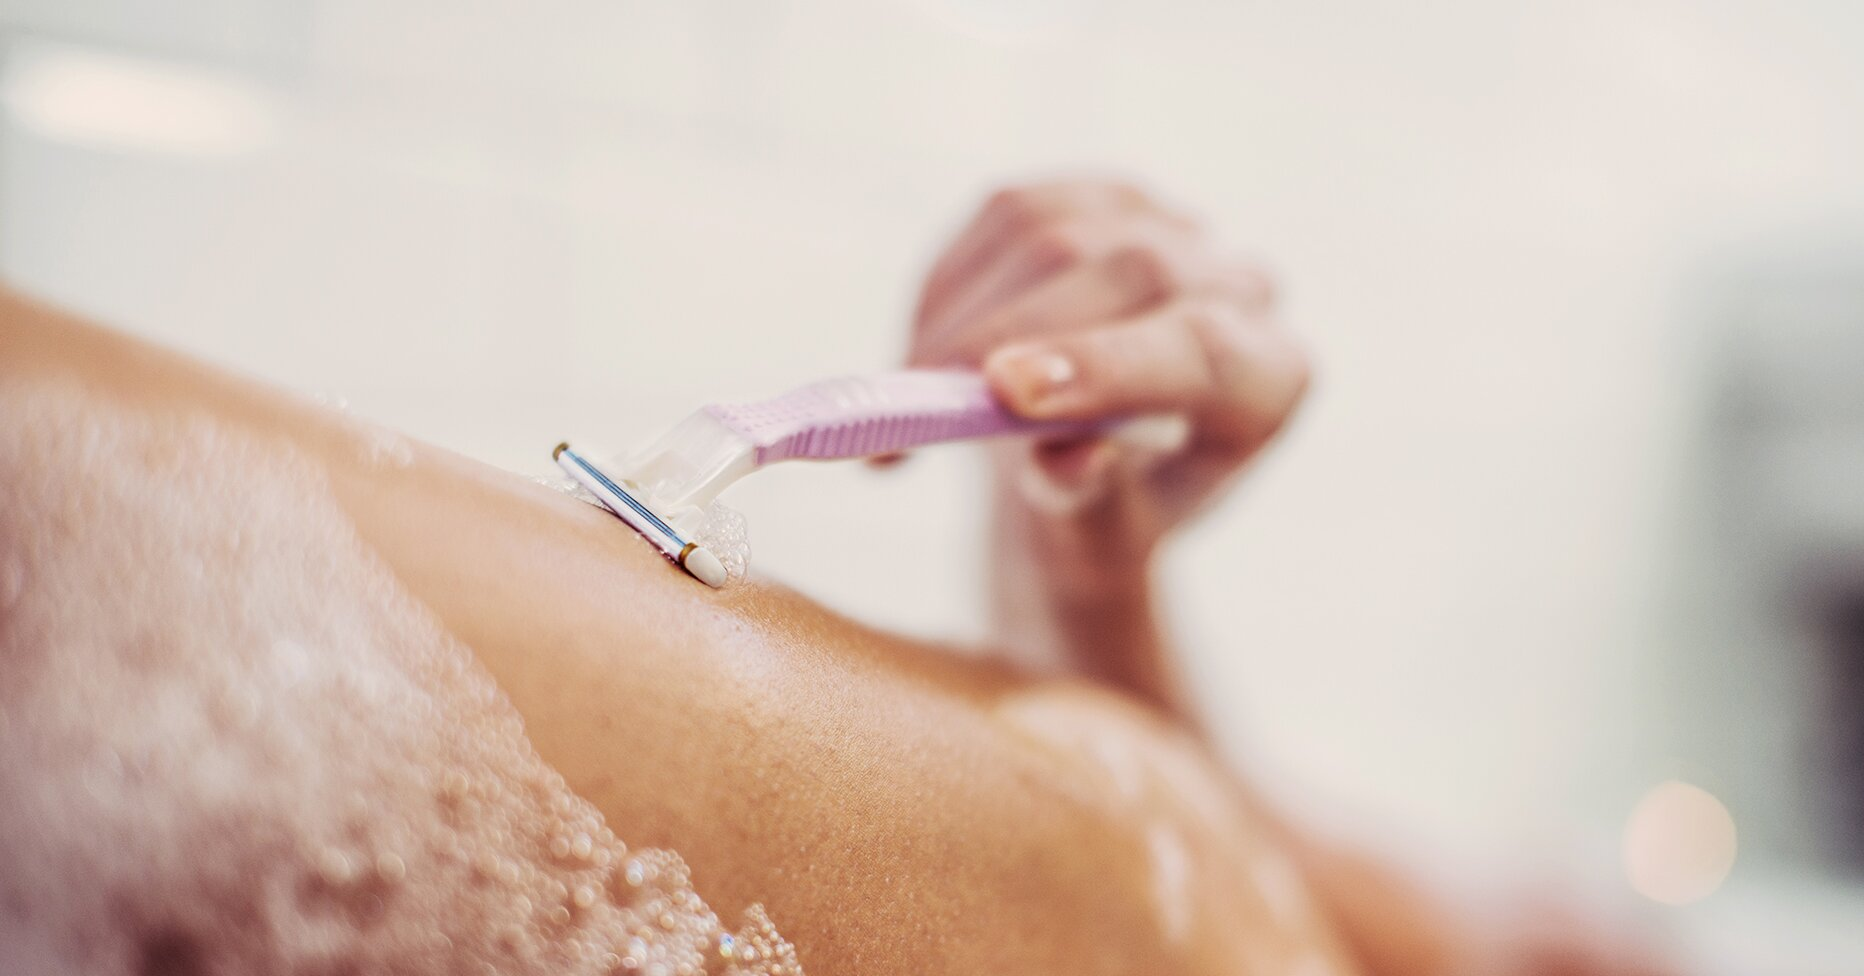 How to Prevent and Treat Ingrown Hairs